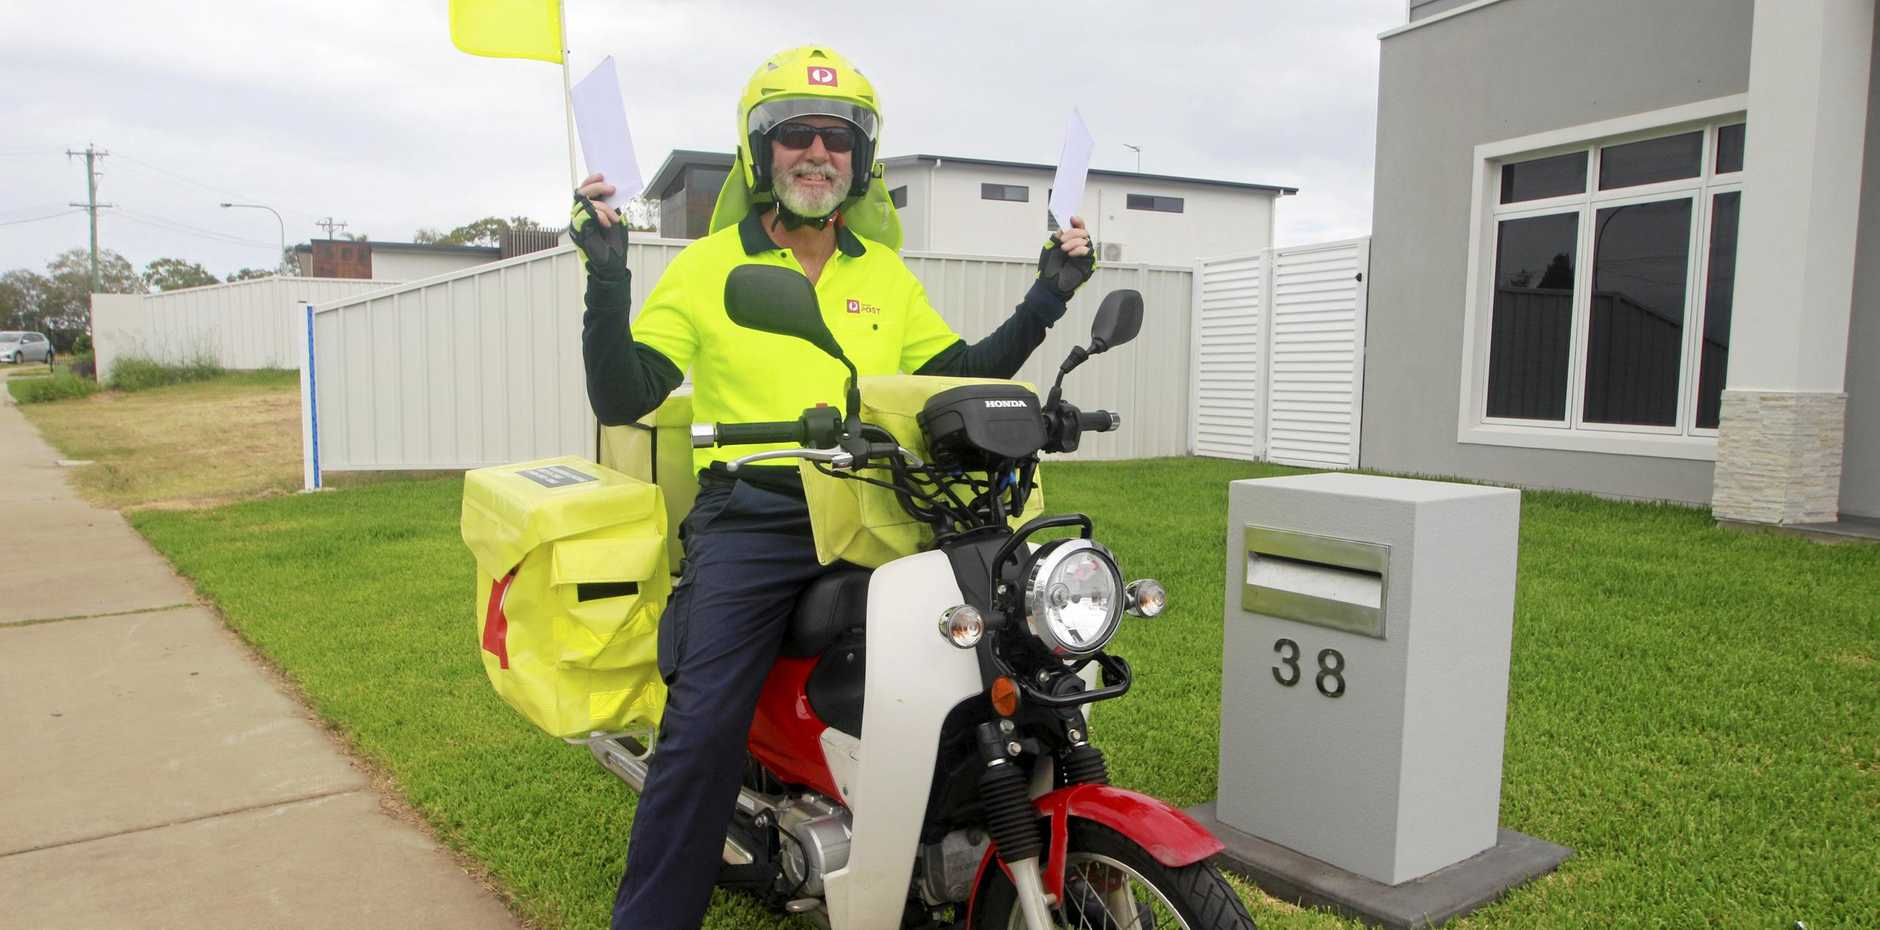 TOP JOB: Shannon Martin has been with Australia Post for 33 years, and loves it.